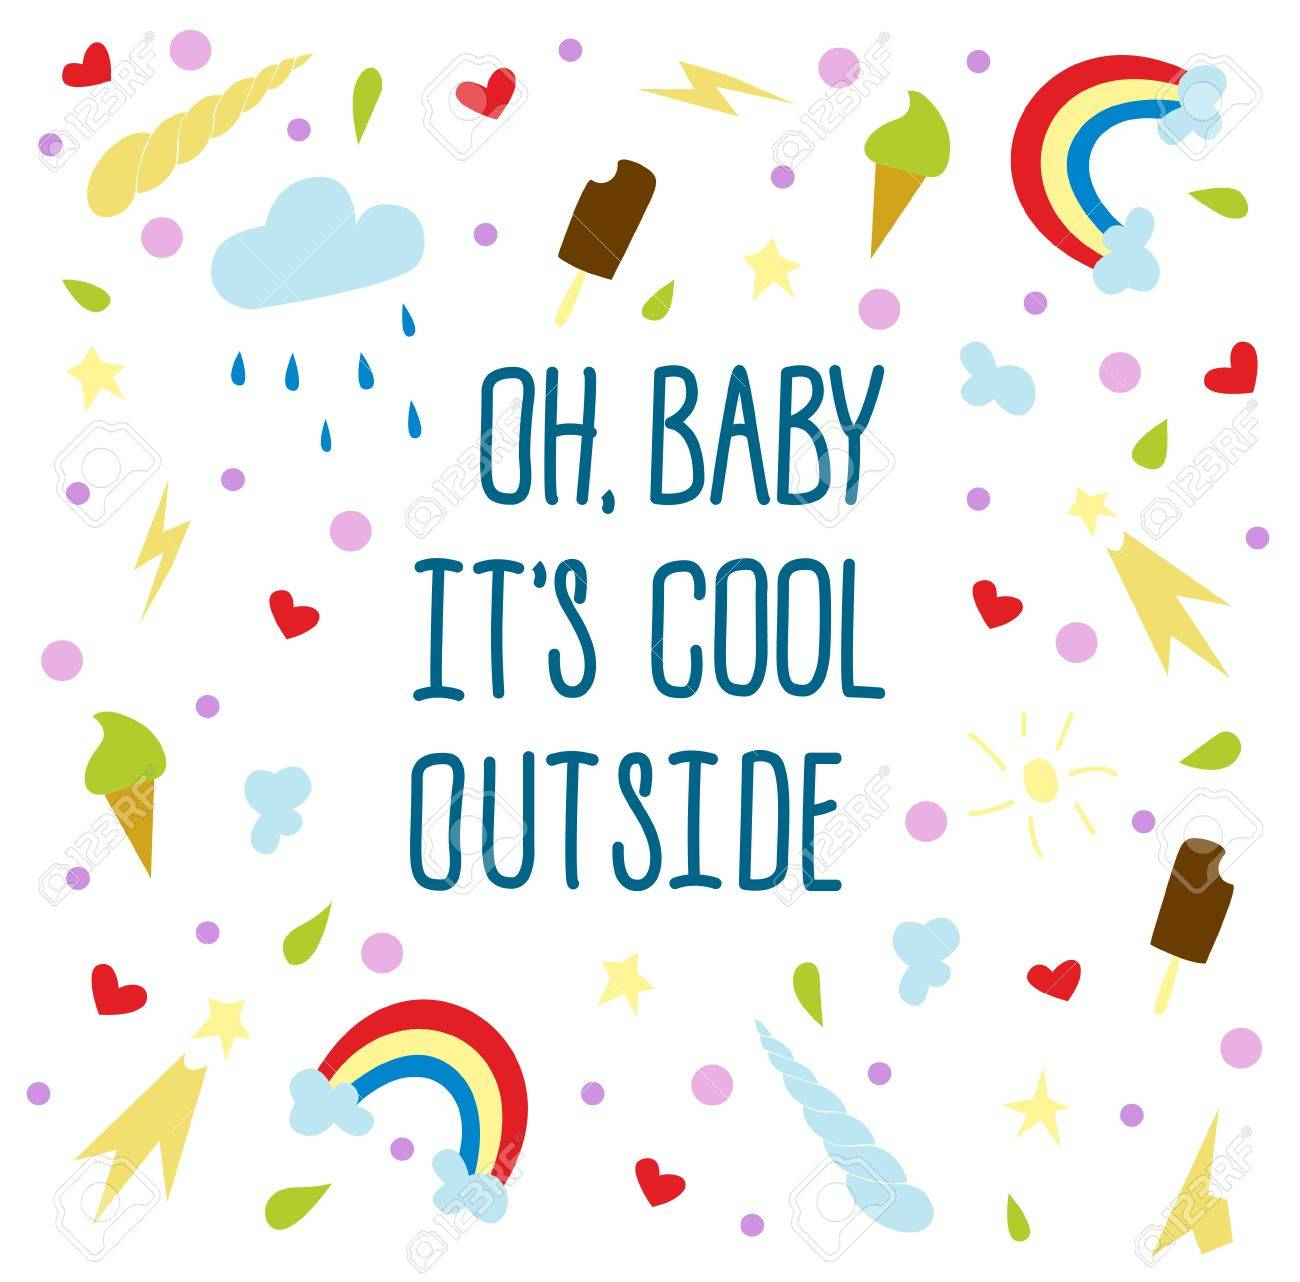 Oh Baby Its Cool Outside Hand Draw Text Cartoon Style